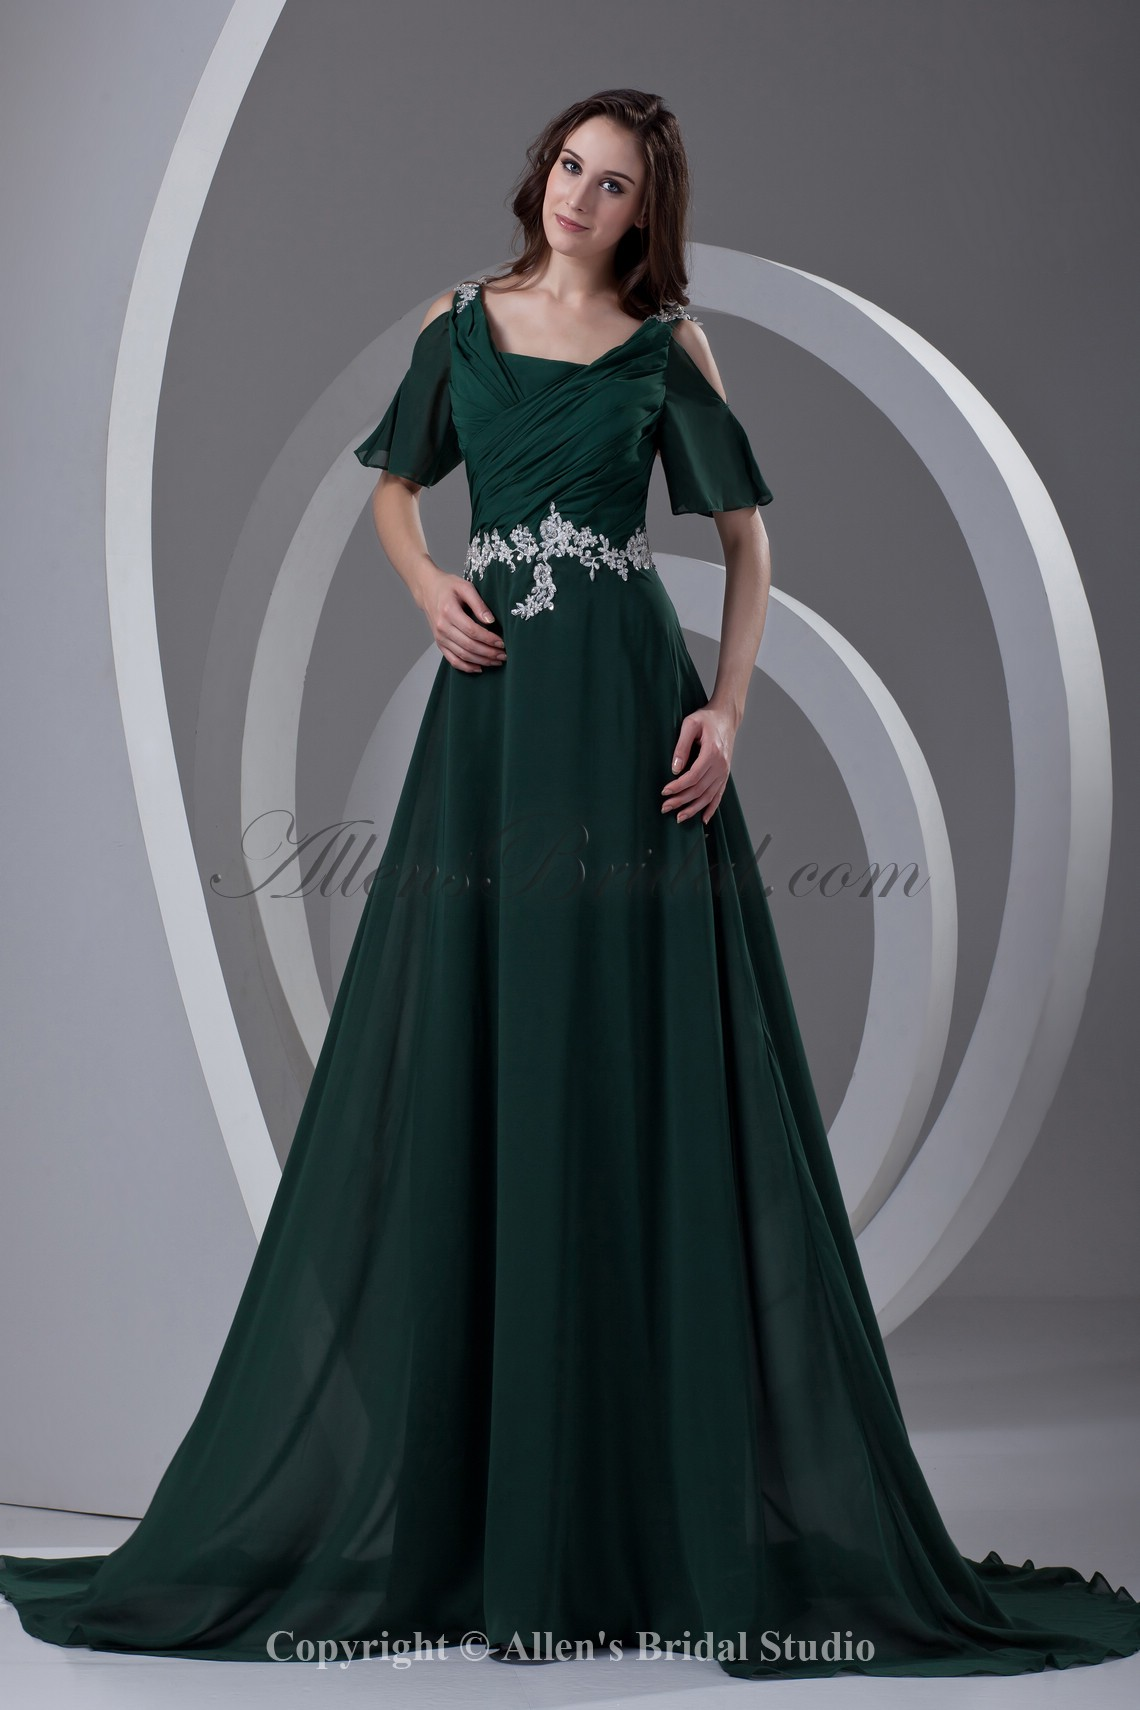 /366-2924/chiffon-straps-neckline-a-line-sweep-train-embroidered-prom-dress.jpg